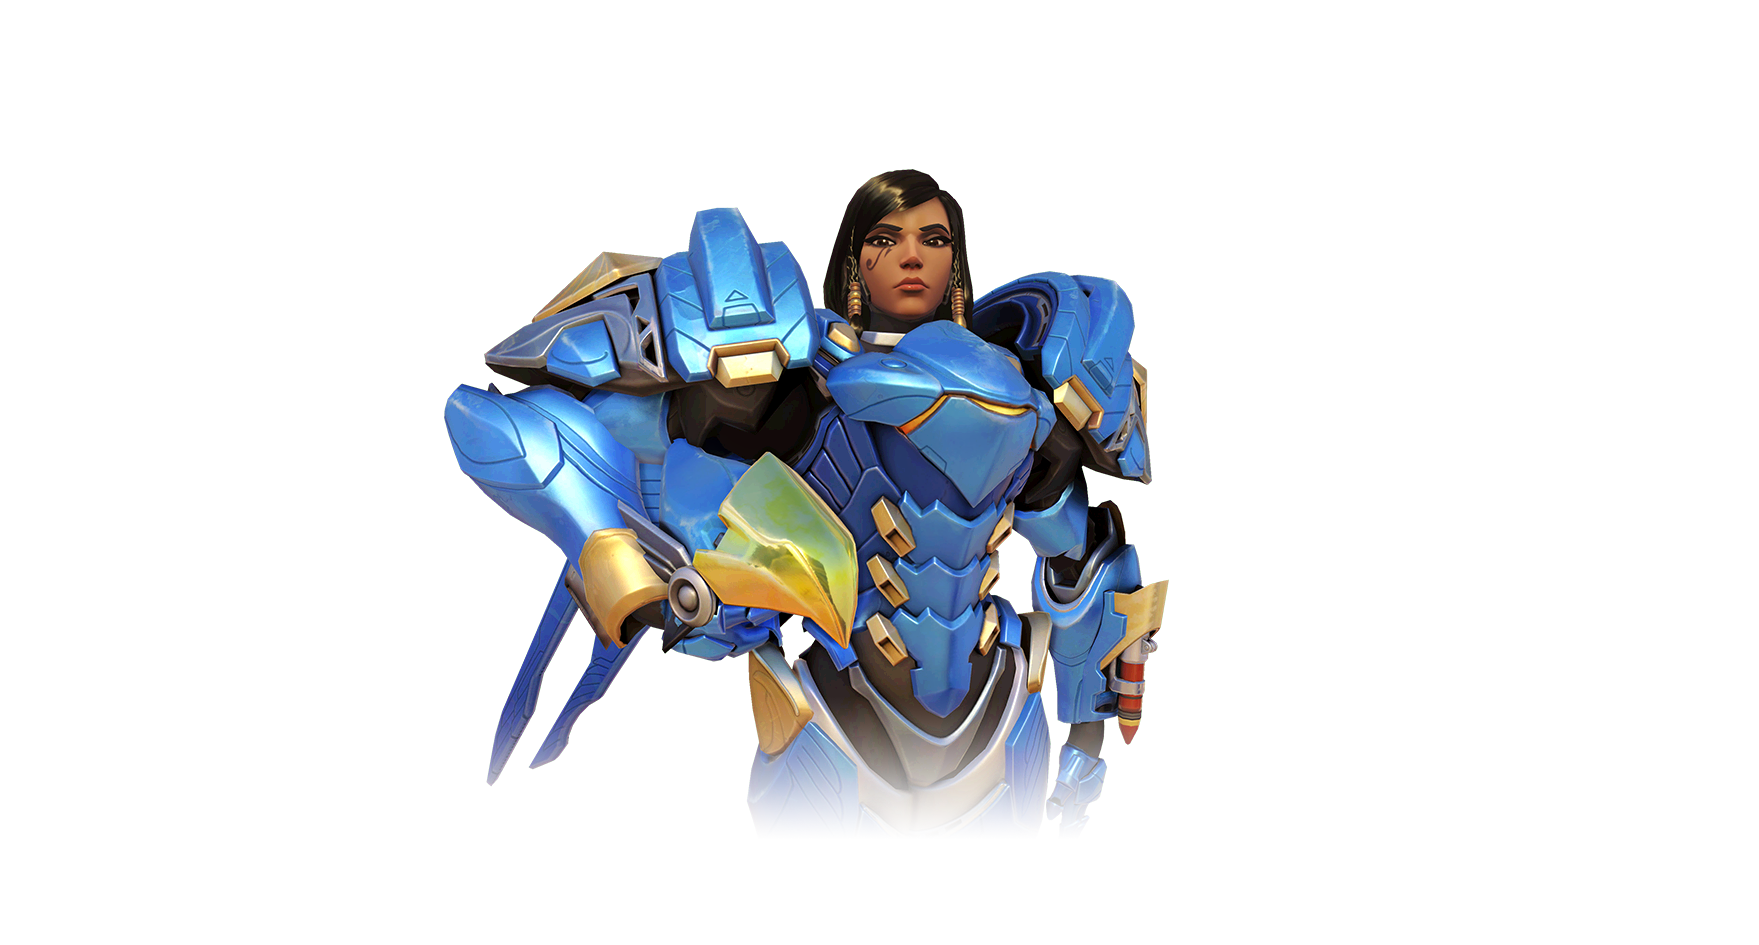 Overwatch transparent png. Characters background album on